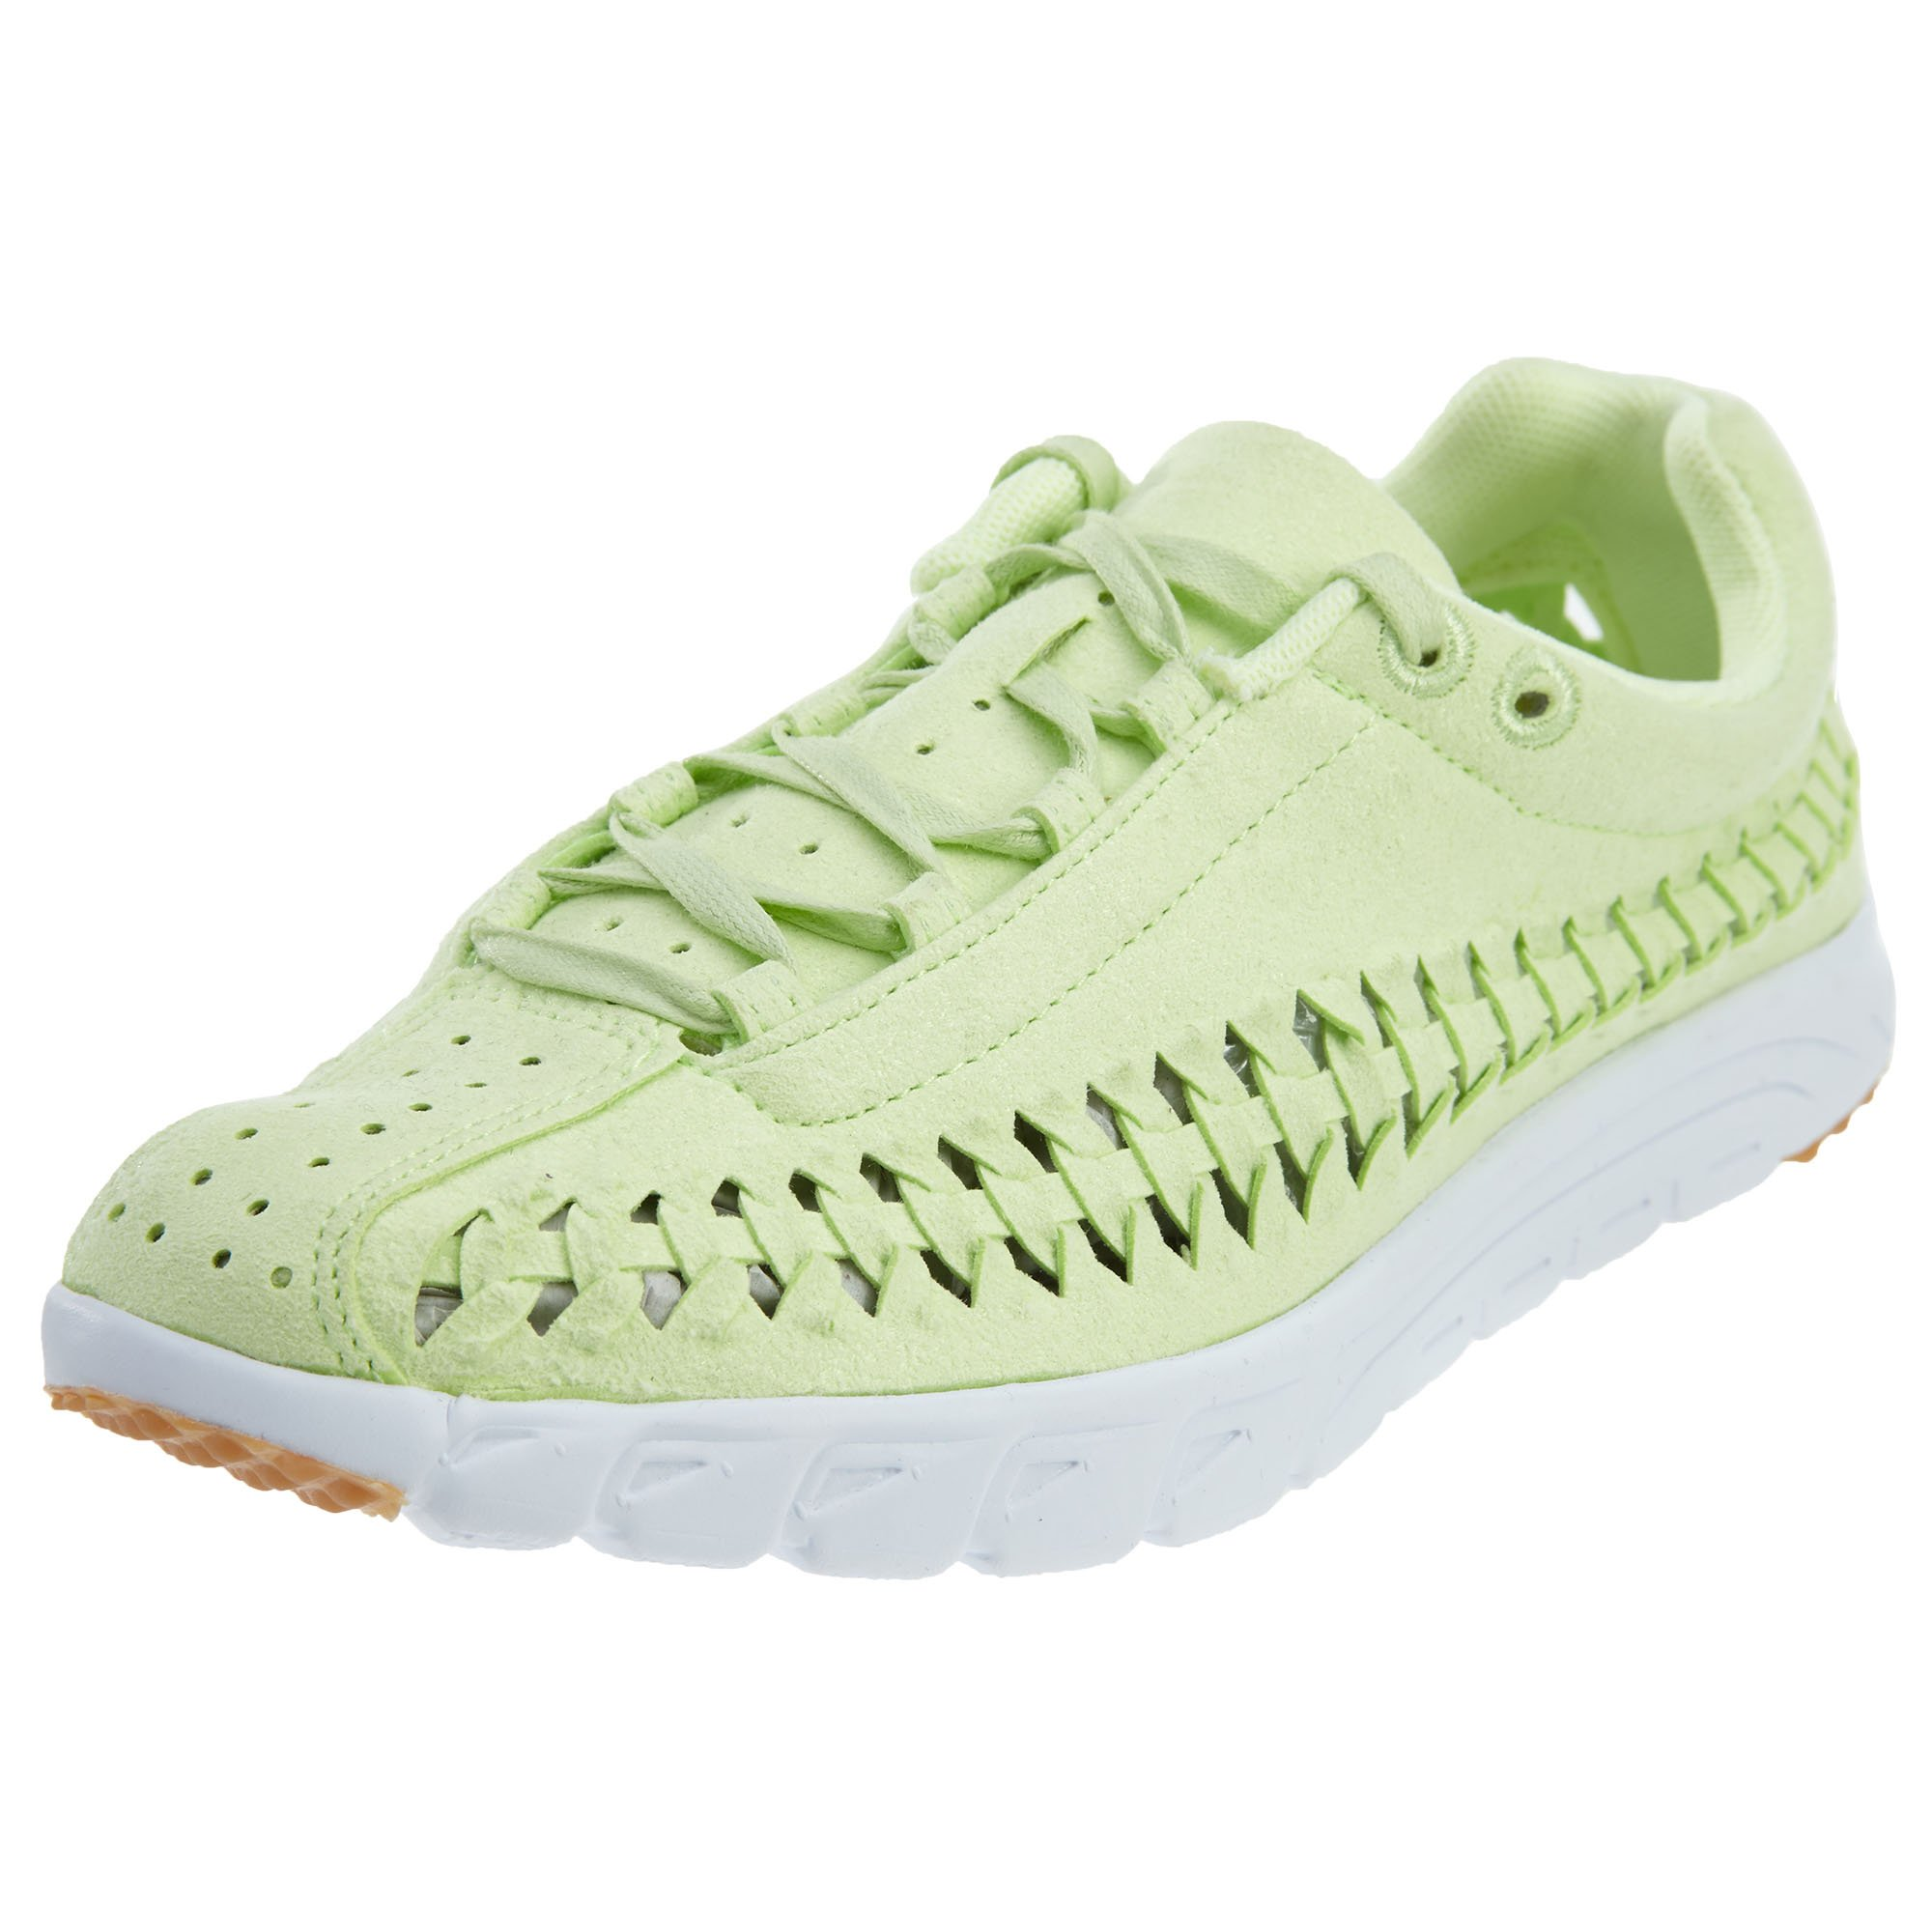 NIKE Mayfly Woven QS Womens Style : 919749-301 Size : 7.5 M US